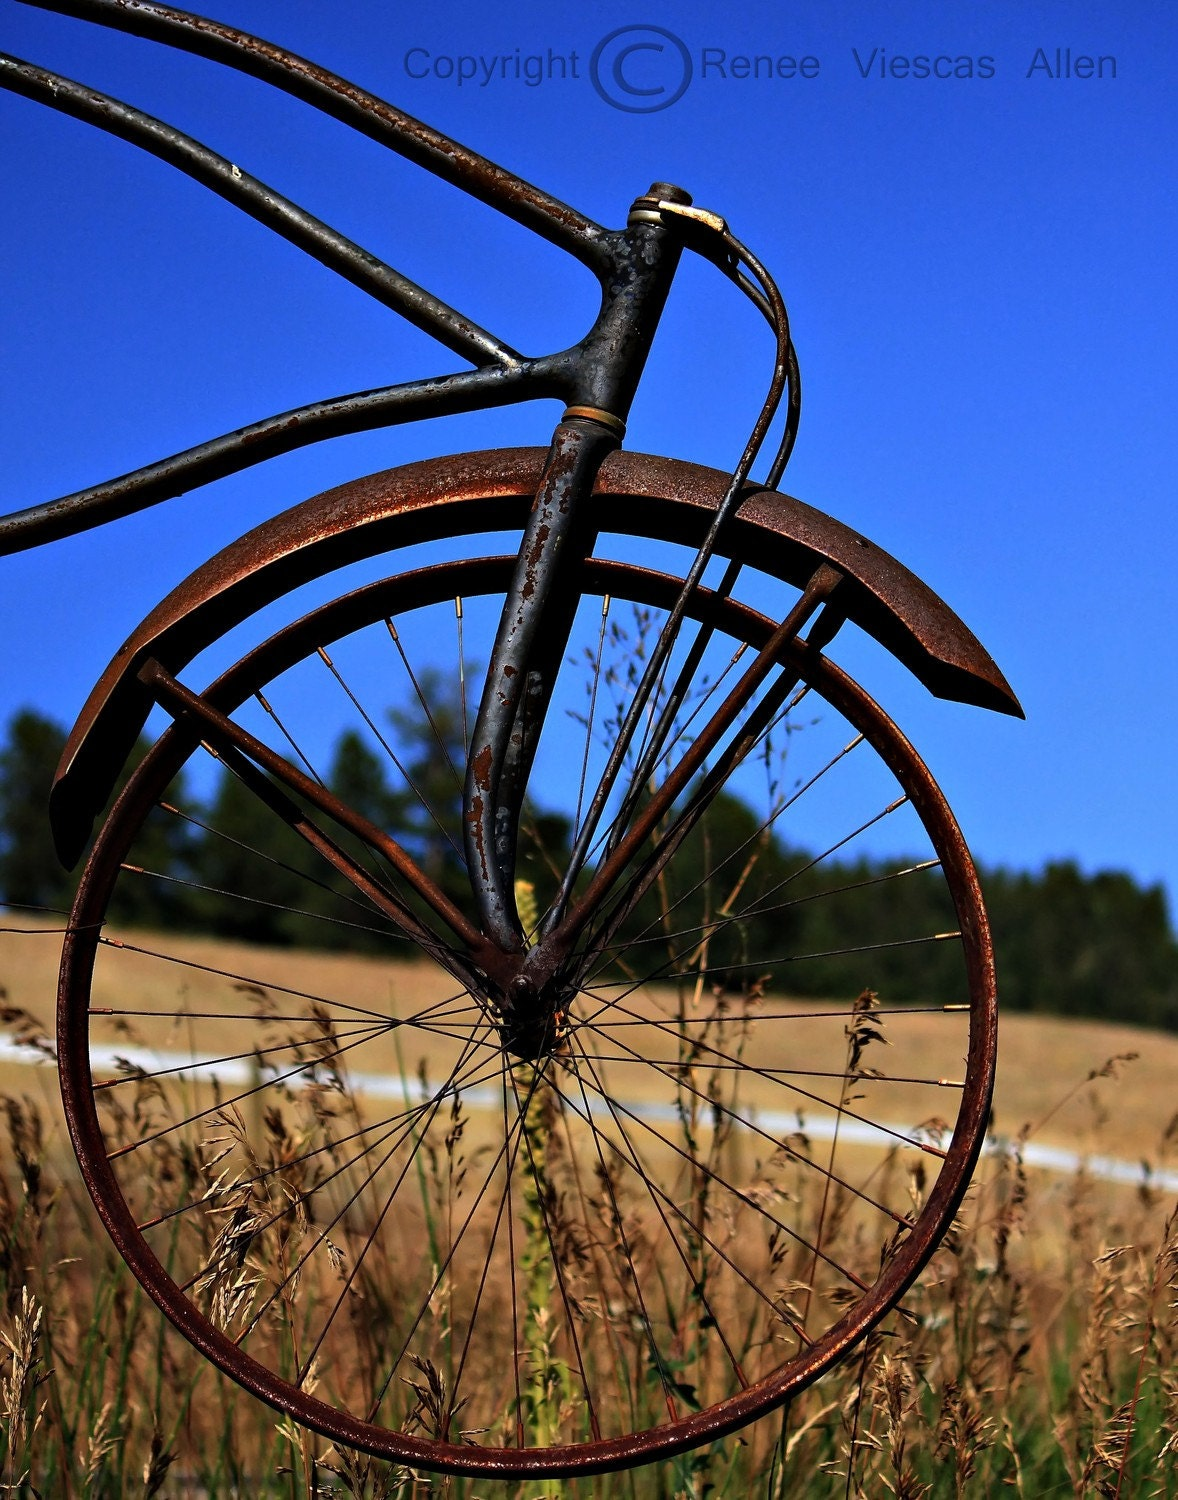 Bicycle 8 x 10 Photograph